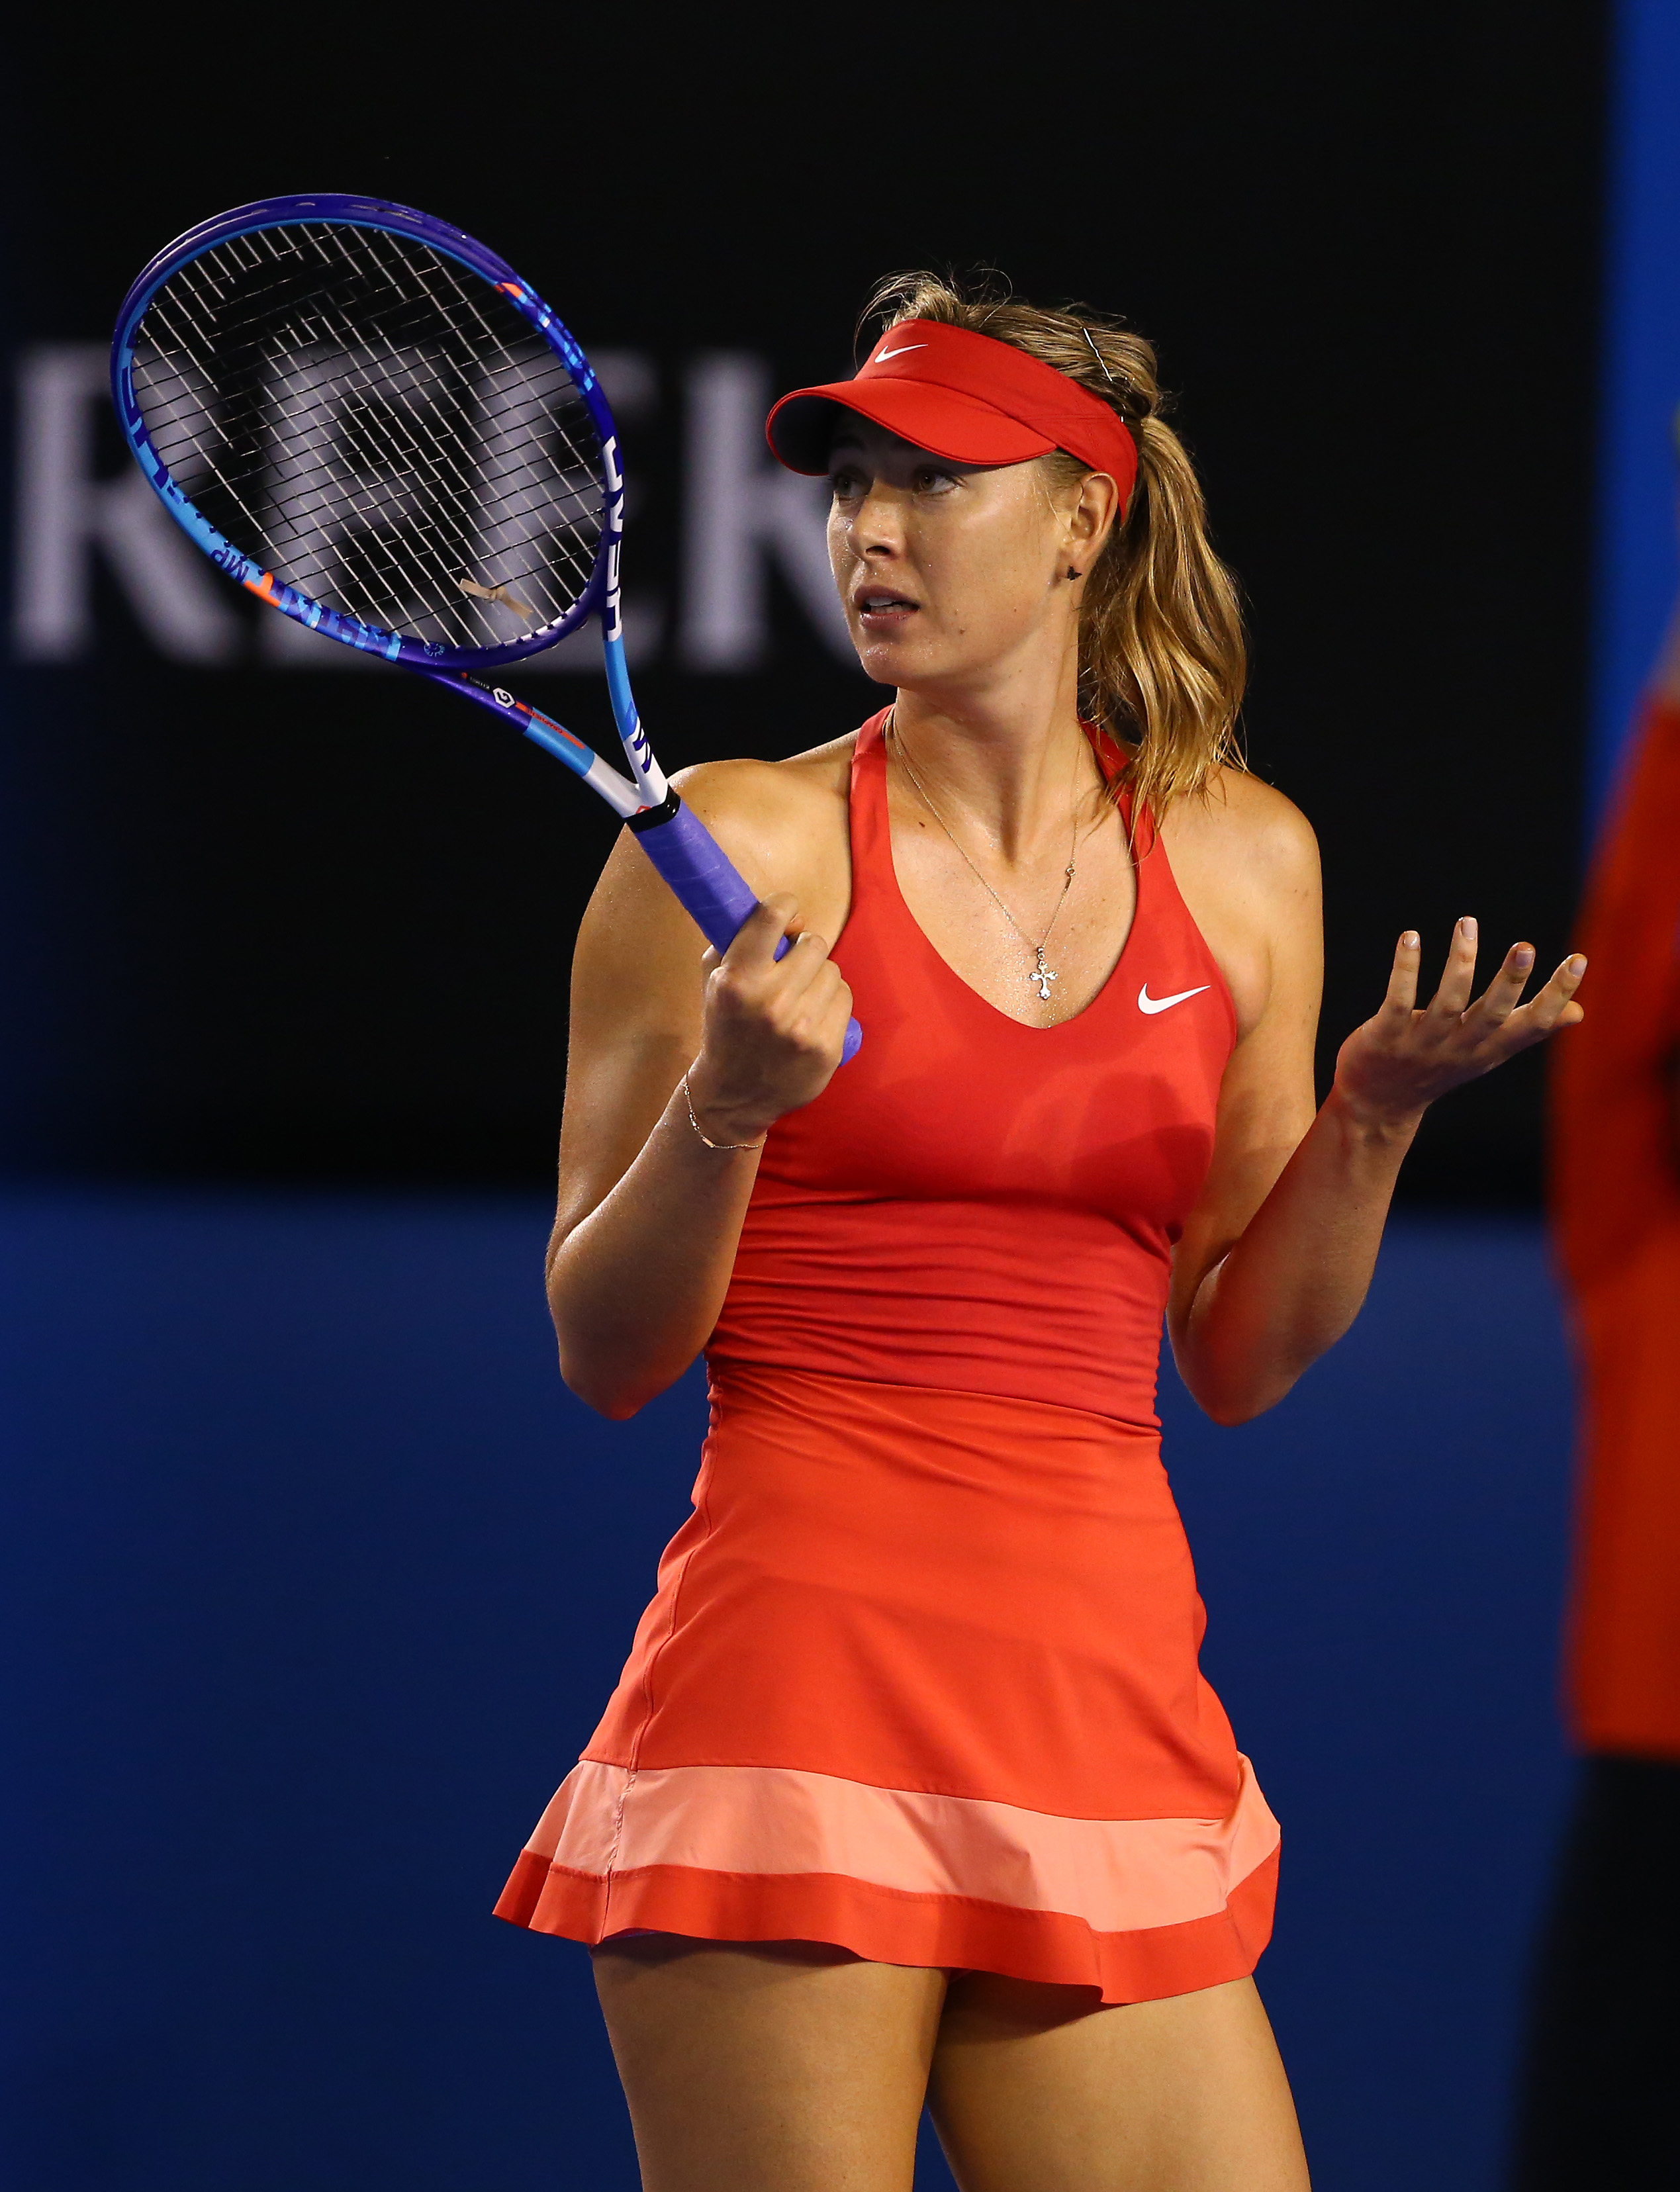 In a sea of neon, Sharapova's classy pink number hits all the right notes.